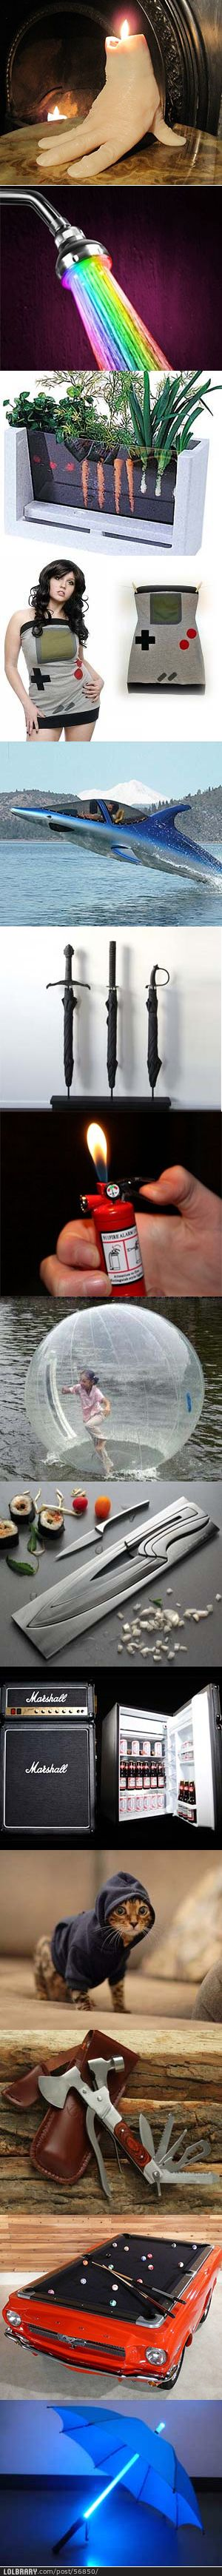 Genius! Comp | Top Dog | Cool Inventions, Inventions, Cool ...